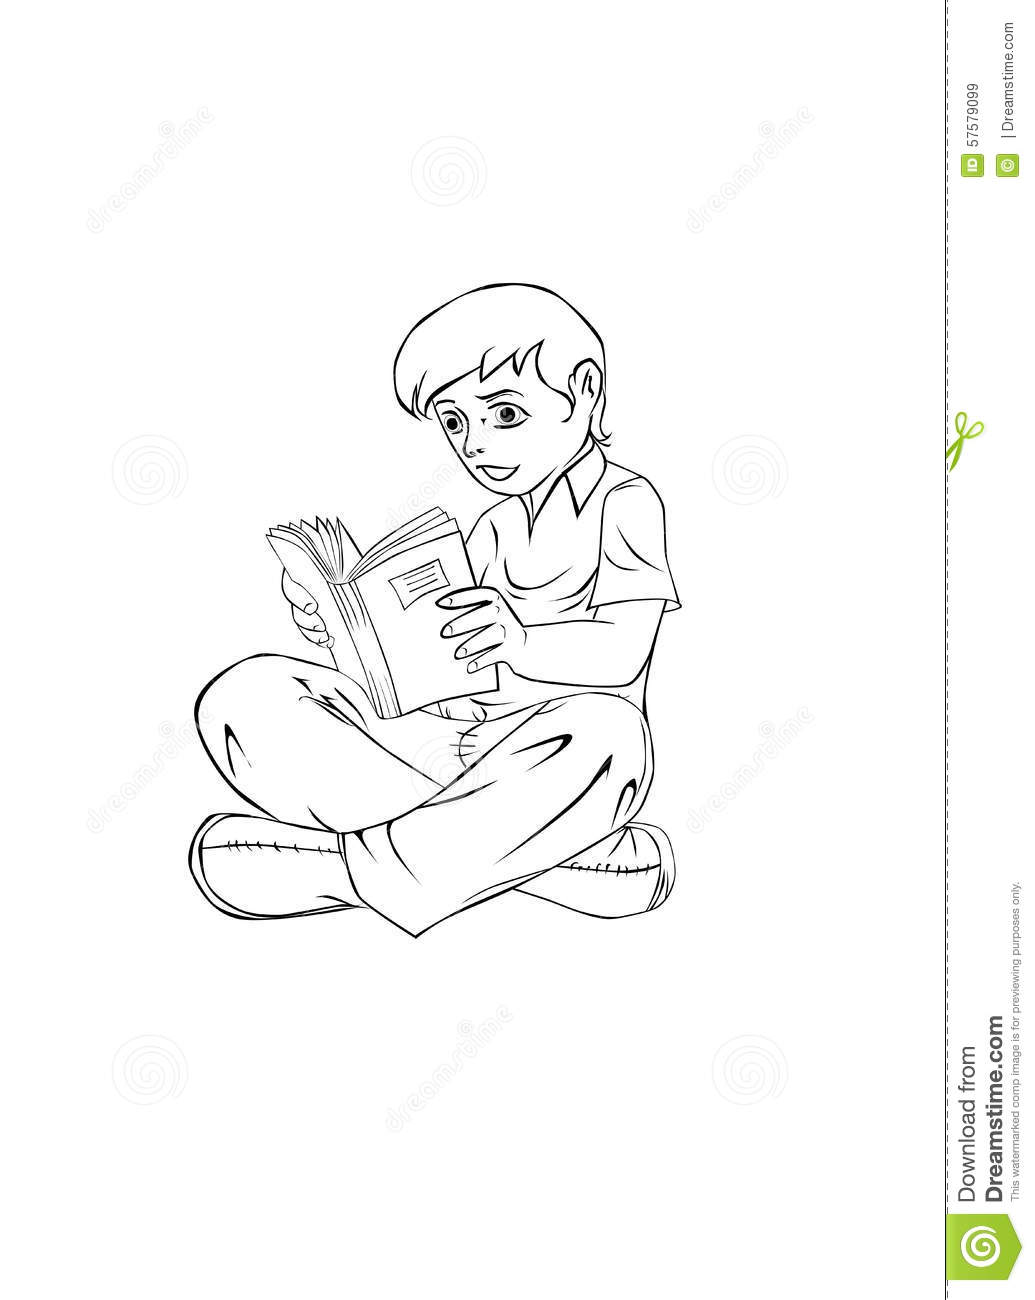 A boy reading a book sitting on the floor with outlined border for coloring purposes